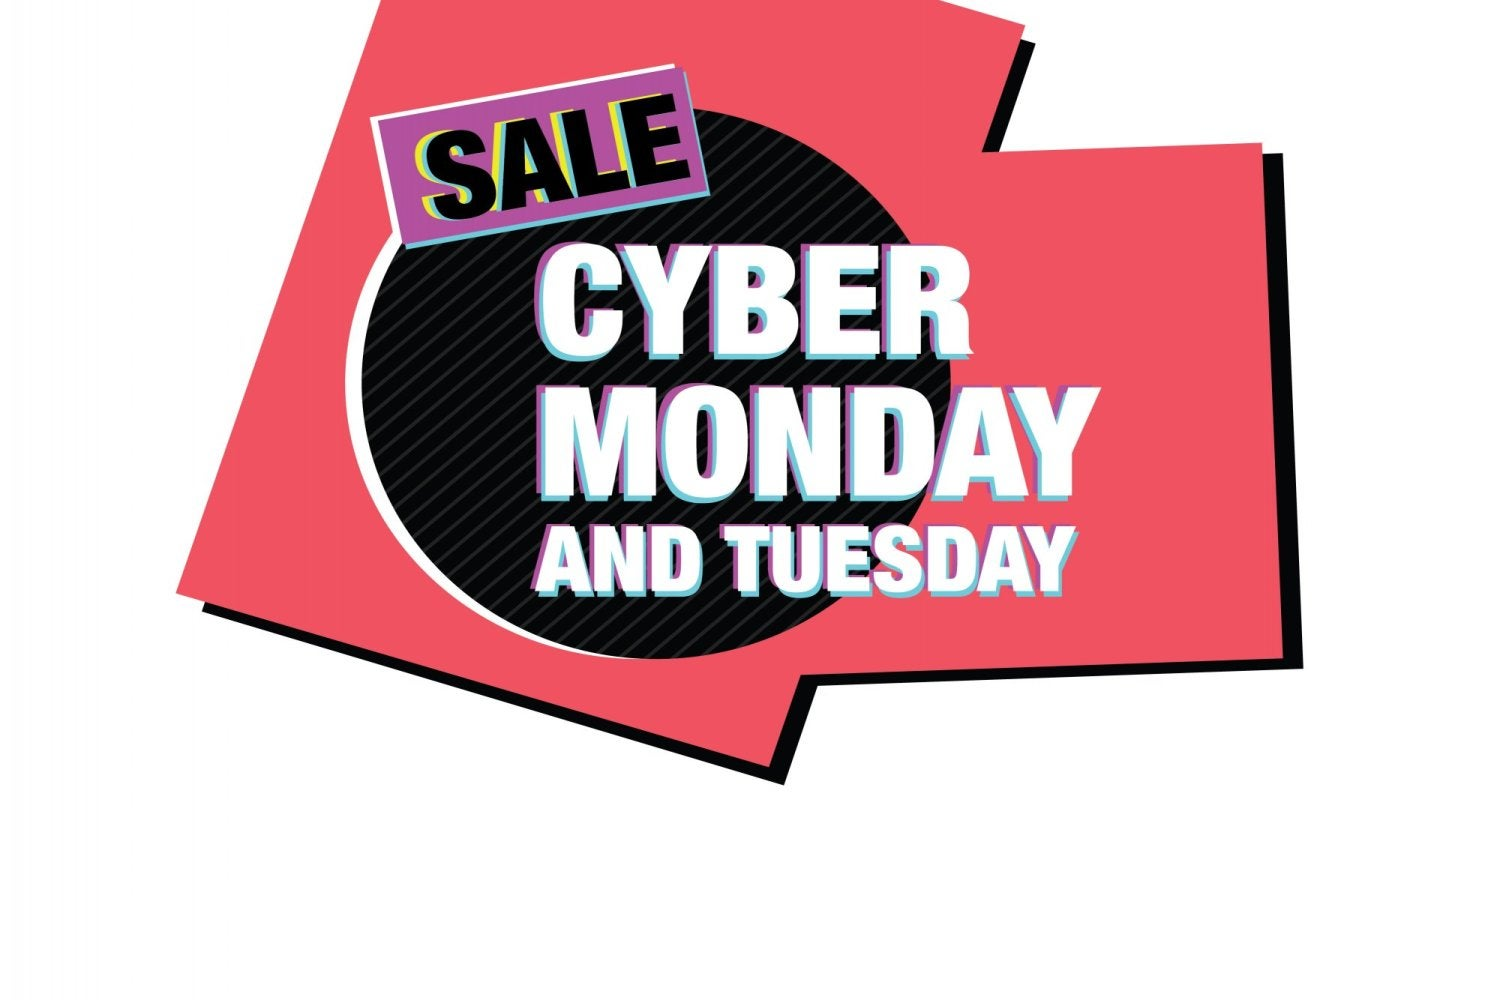 Sale Cyber Monday and Tuesday